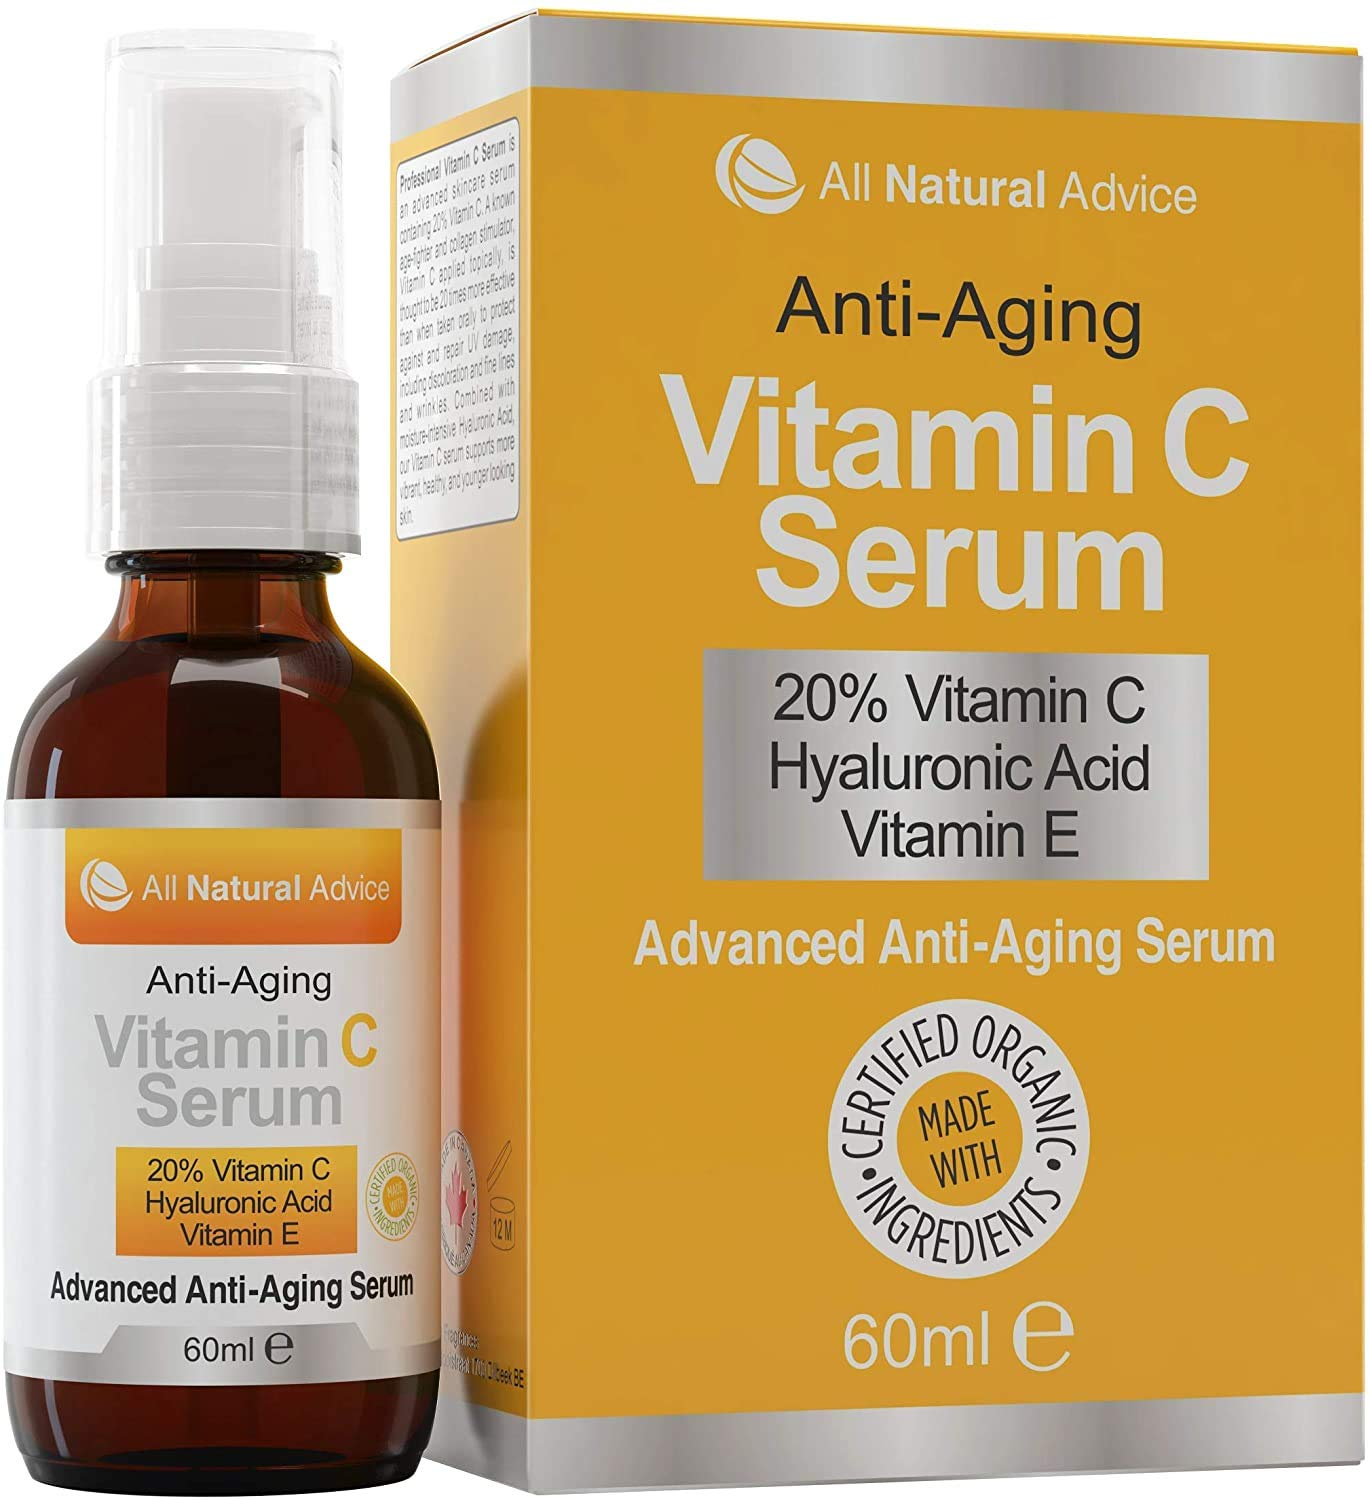 20% Vitamin C Serum - 60 ml / 2 oz Made in Canada - Certified Organic Ingredients + 11% Hyaluronic Acid + Vitamin E Moisturizer + Anti-Aging formulation, Excellent for Your Skin + Includes Pump & Dropper…